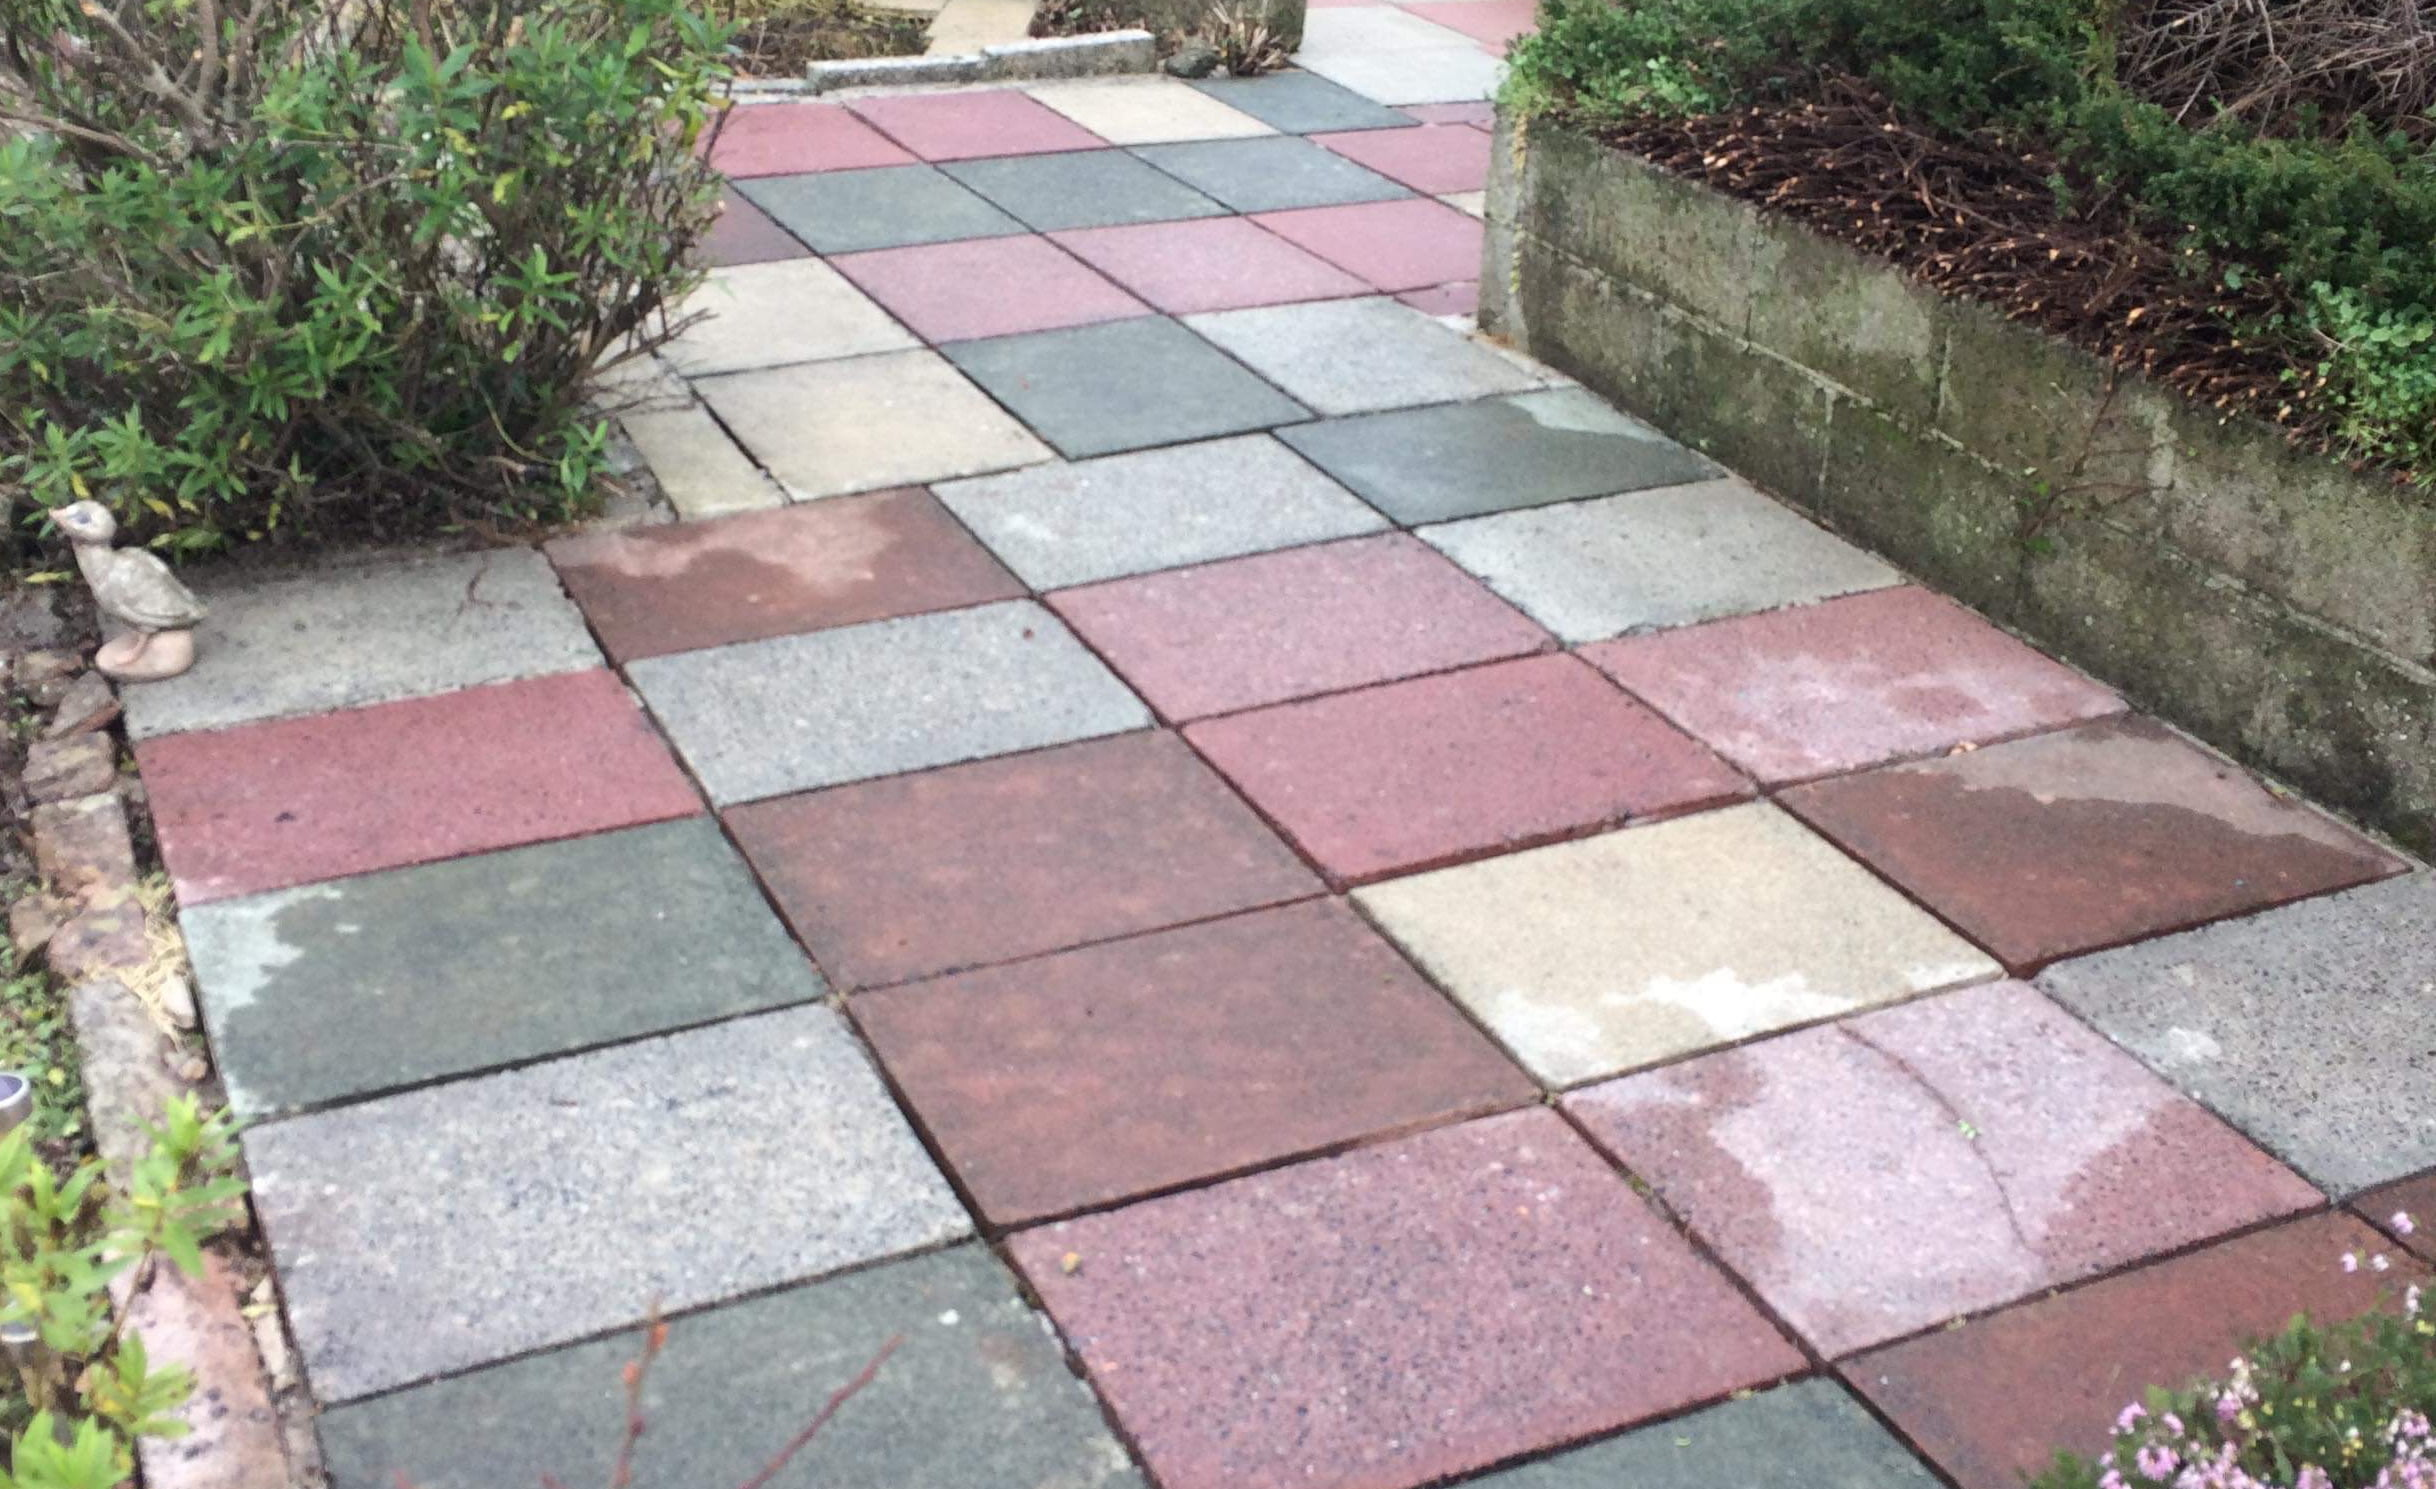 Greener-Ways offer a Whirl-A-Way Pressure Washing service for block paving and other areas.